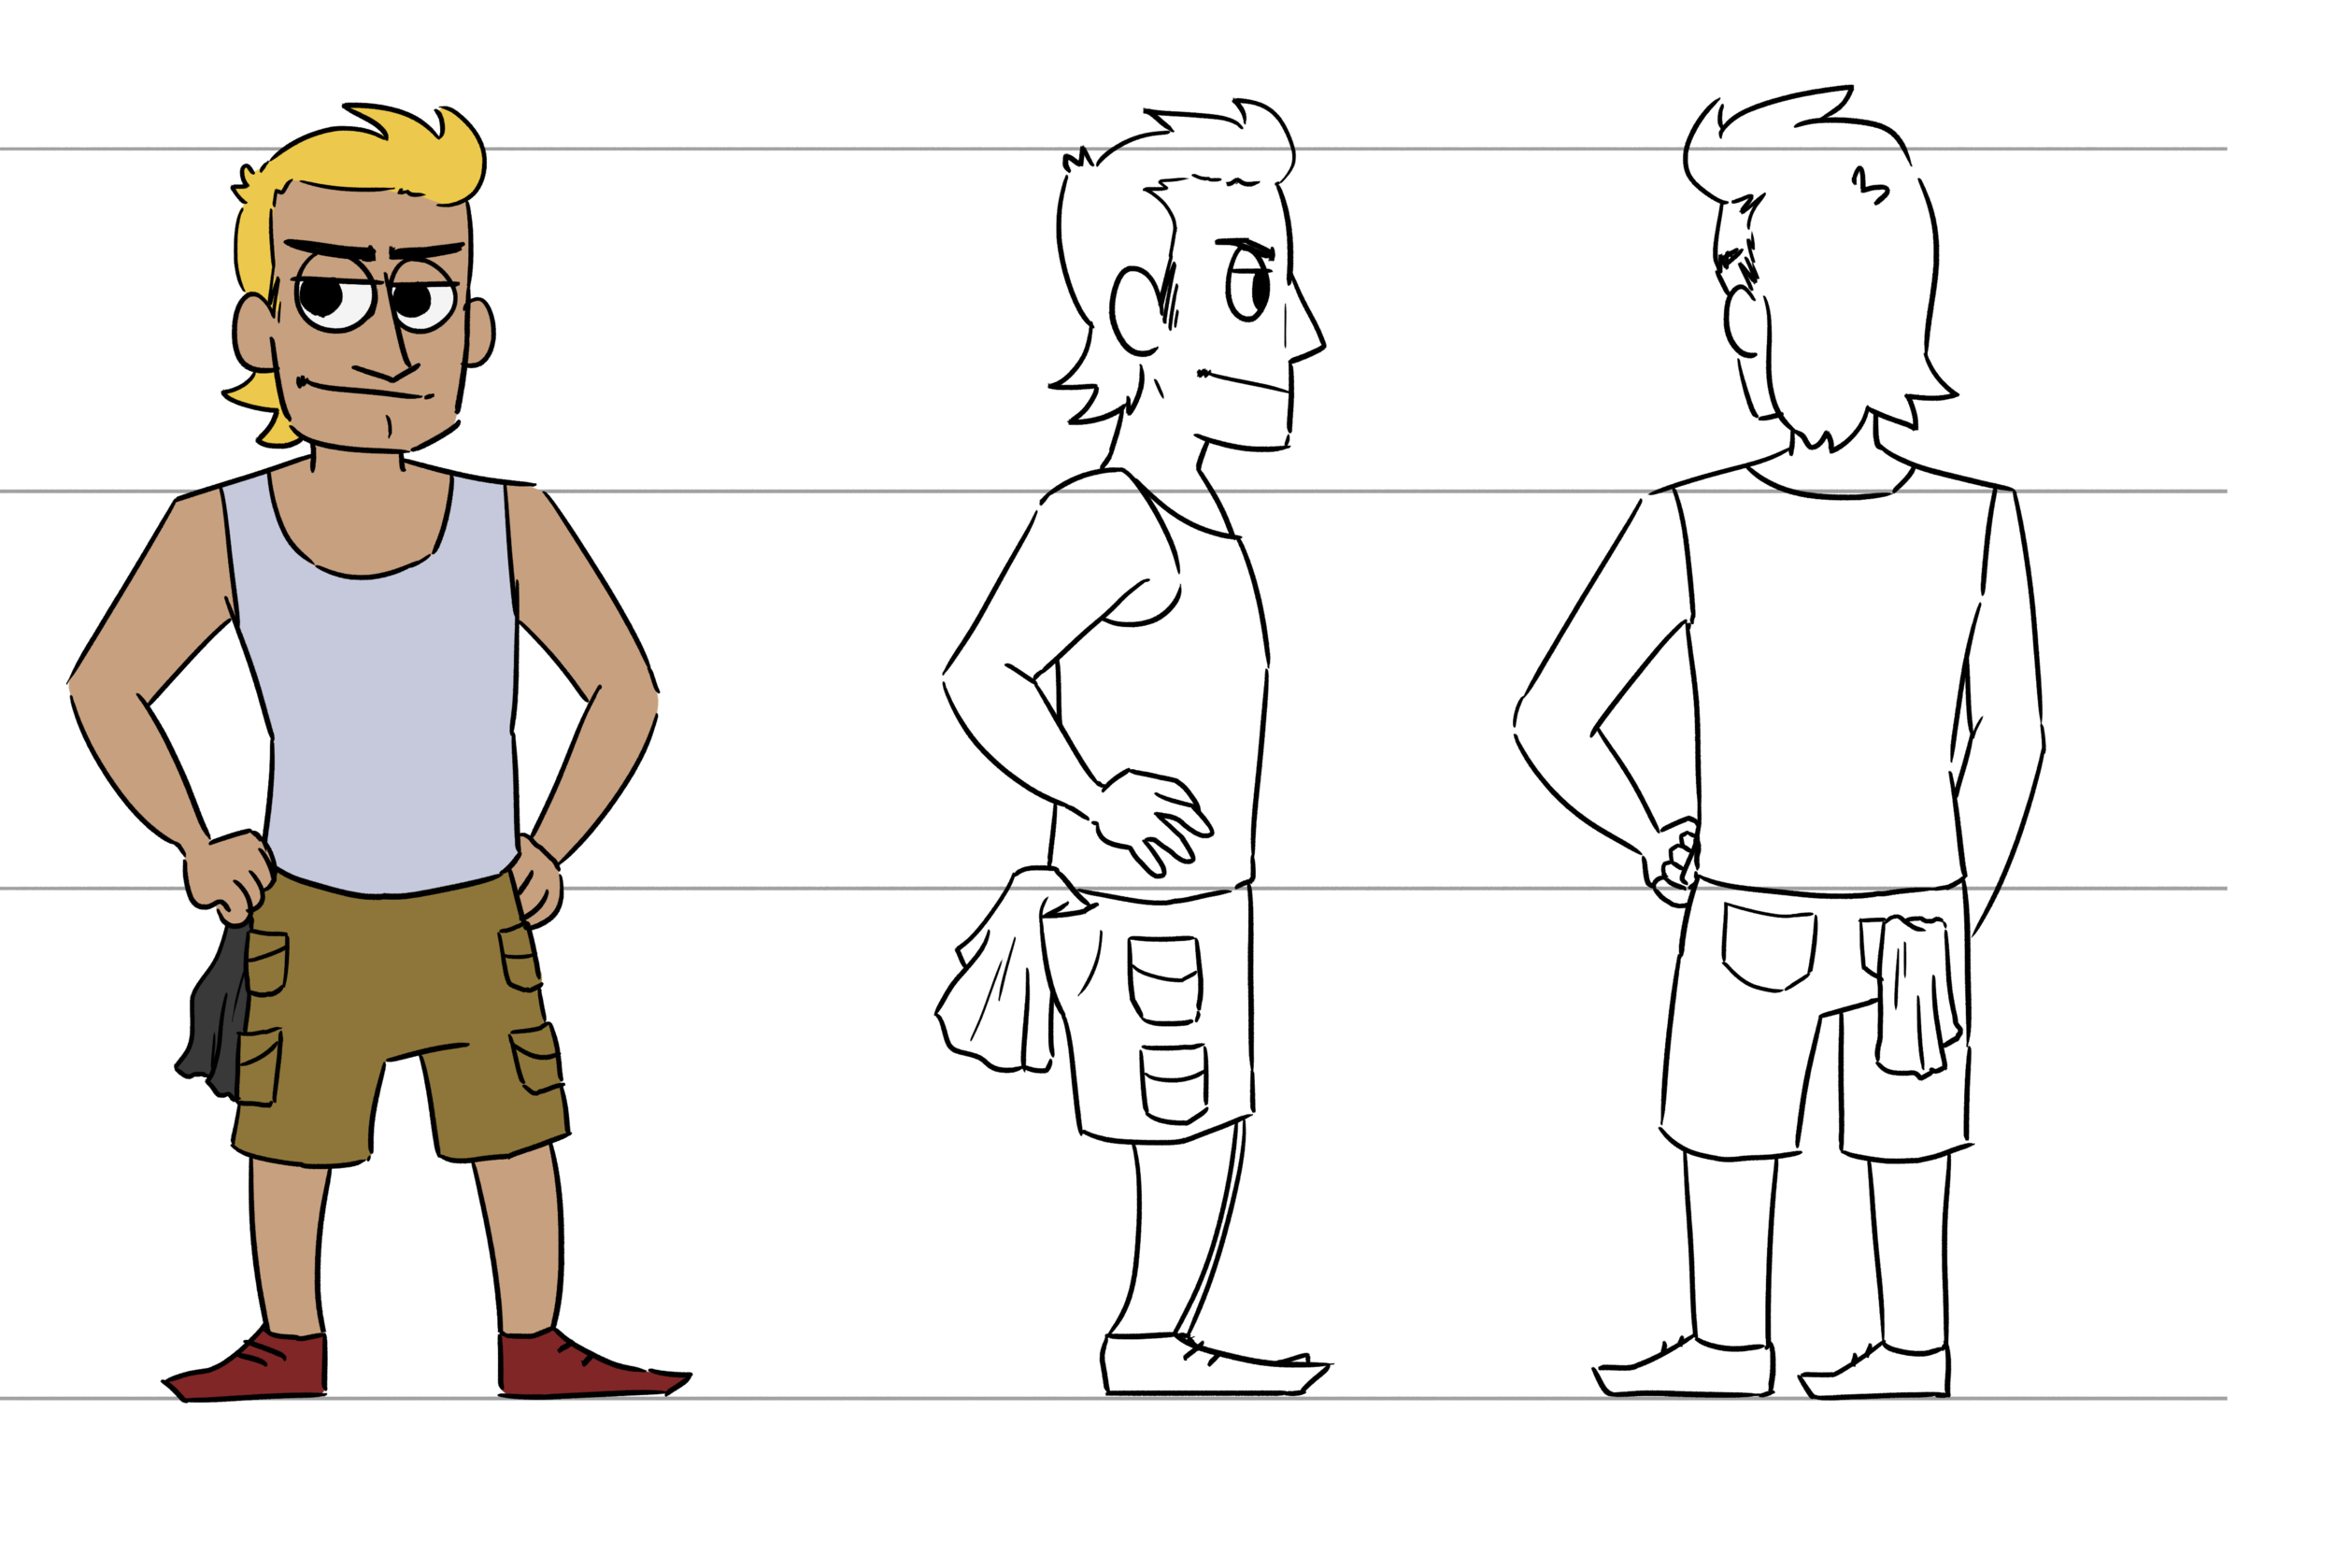 Turnaround with color (and cargo shorts)